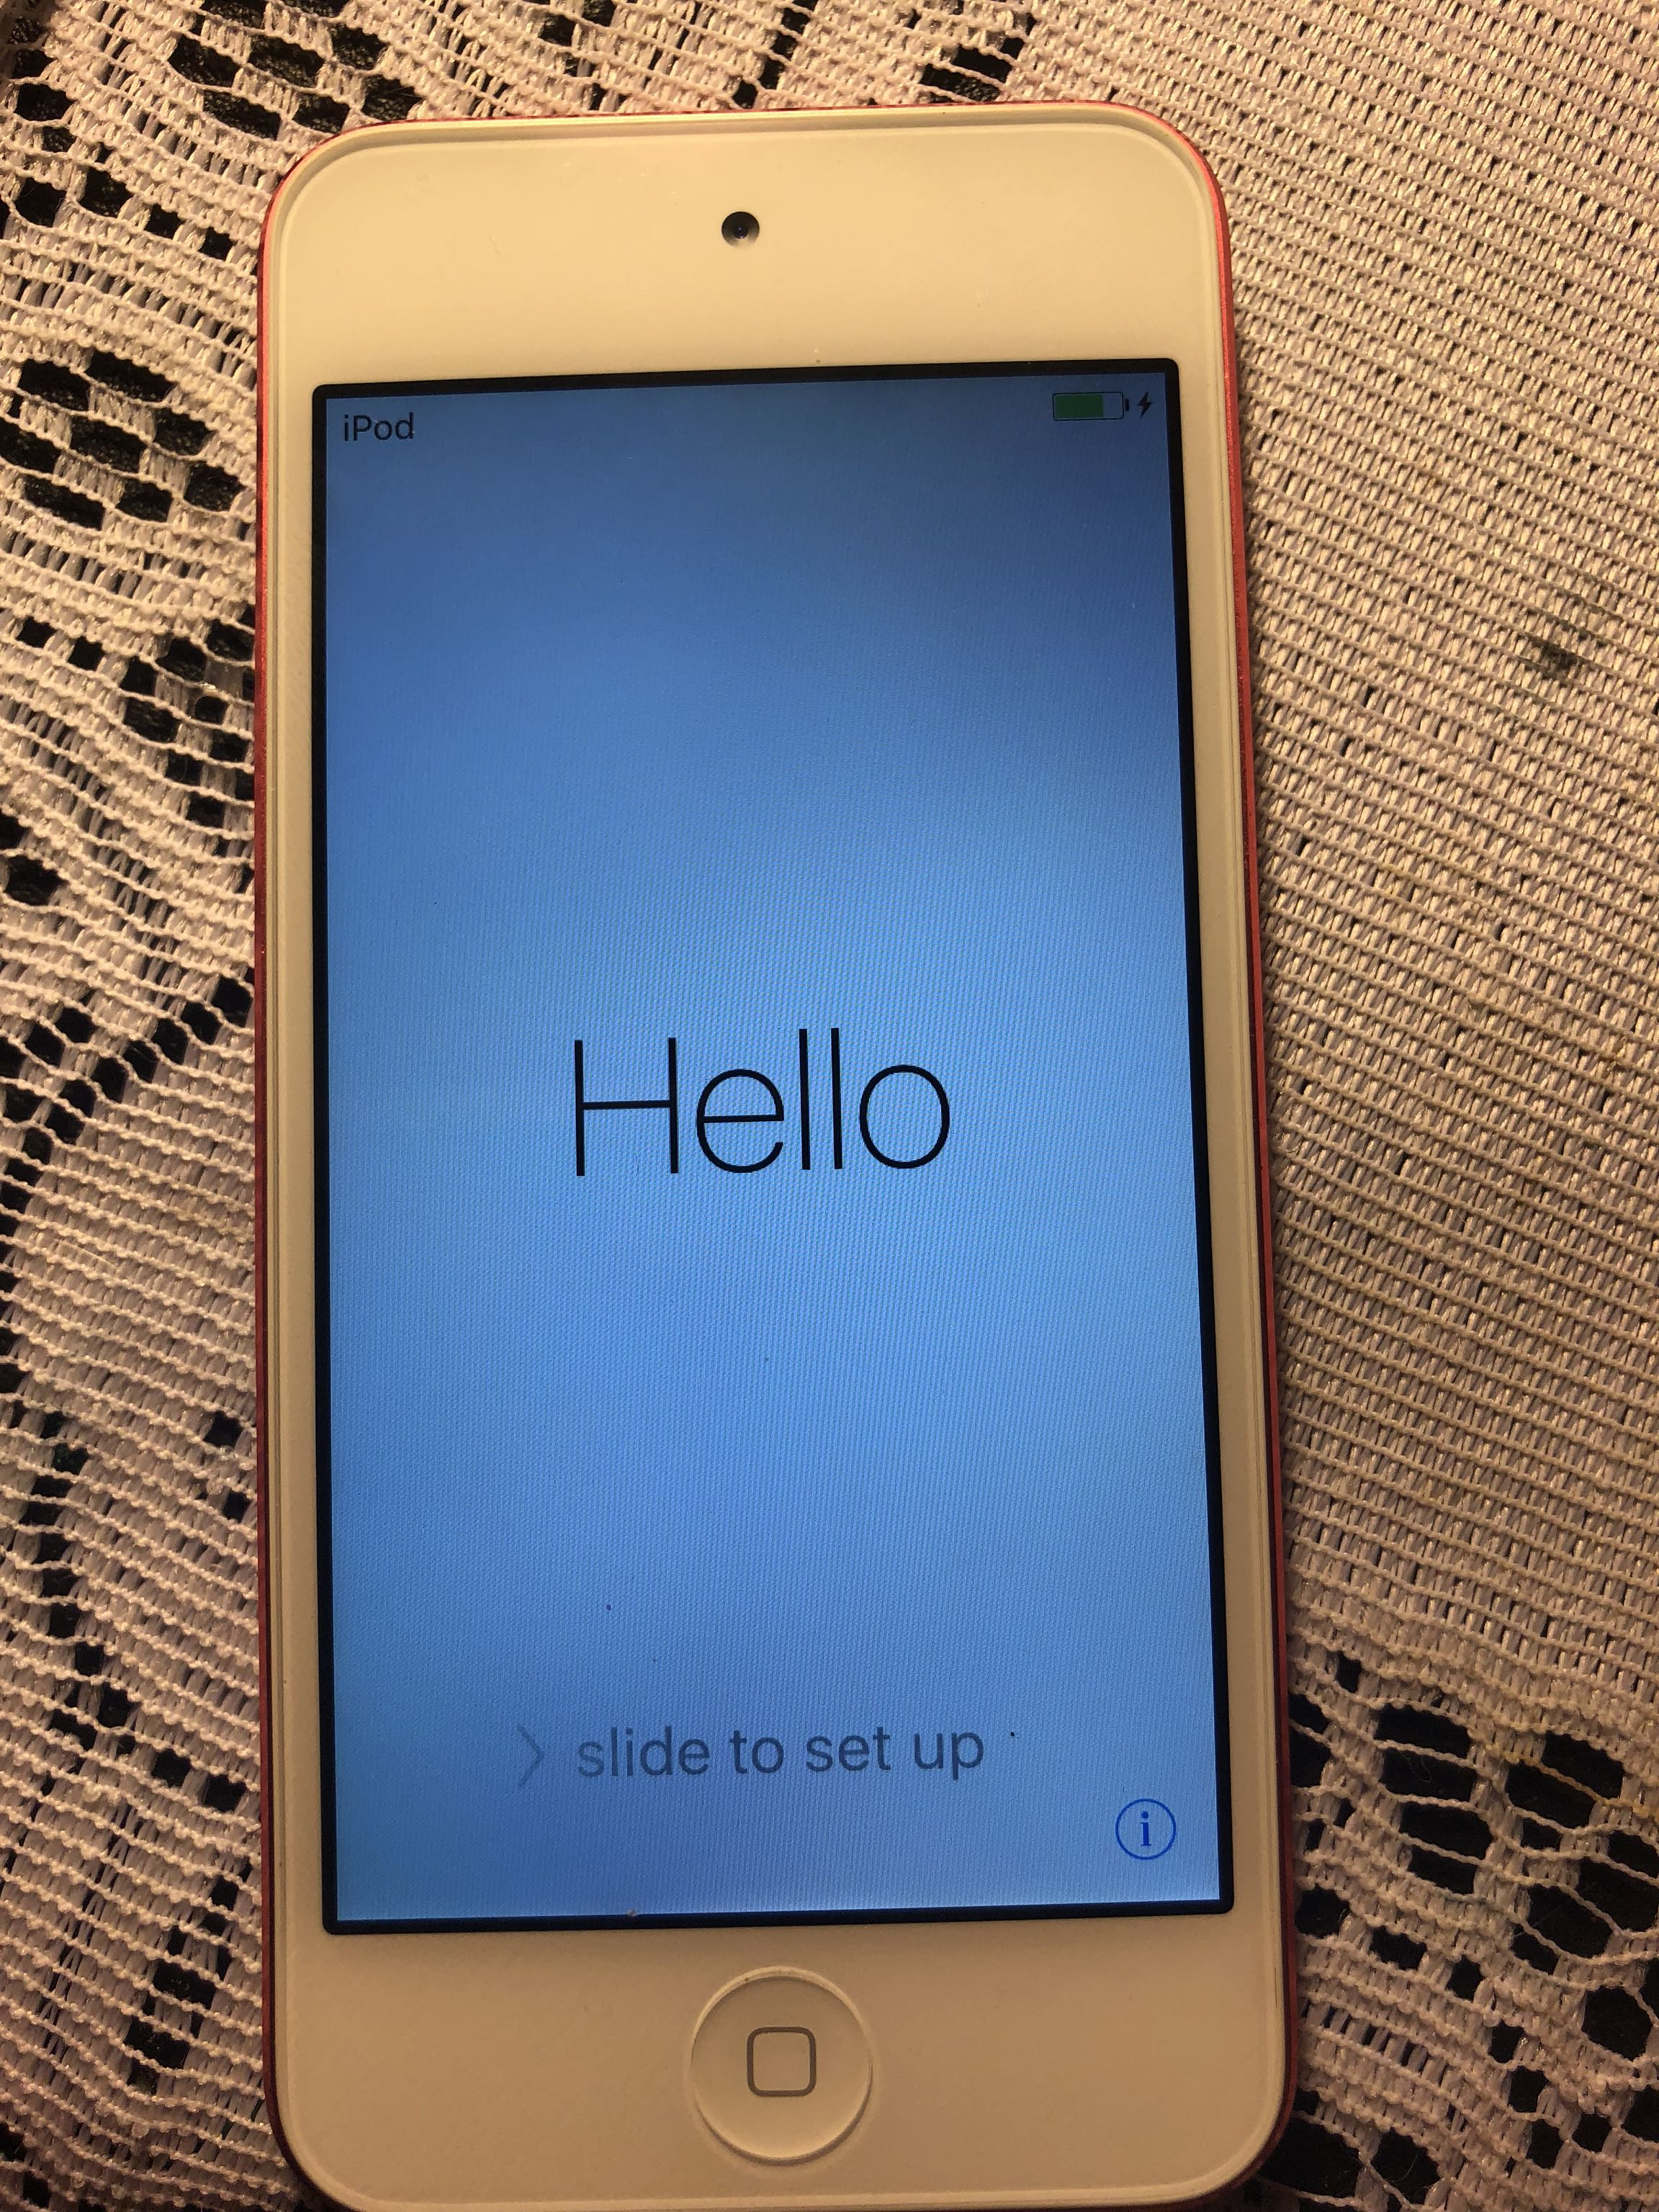 iPod Touch 5 generation 24 GB